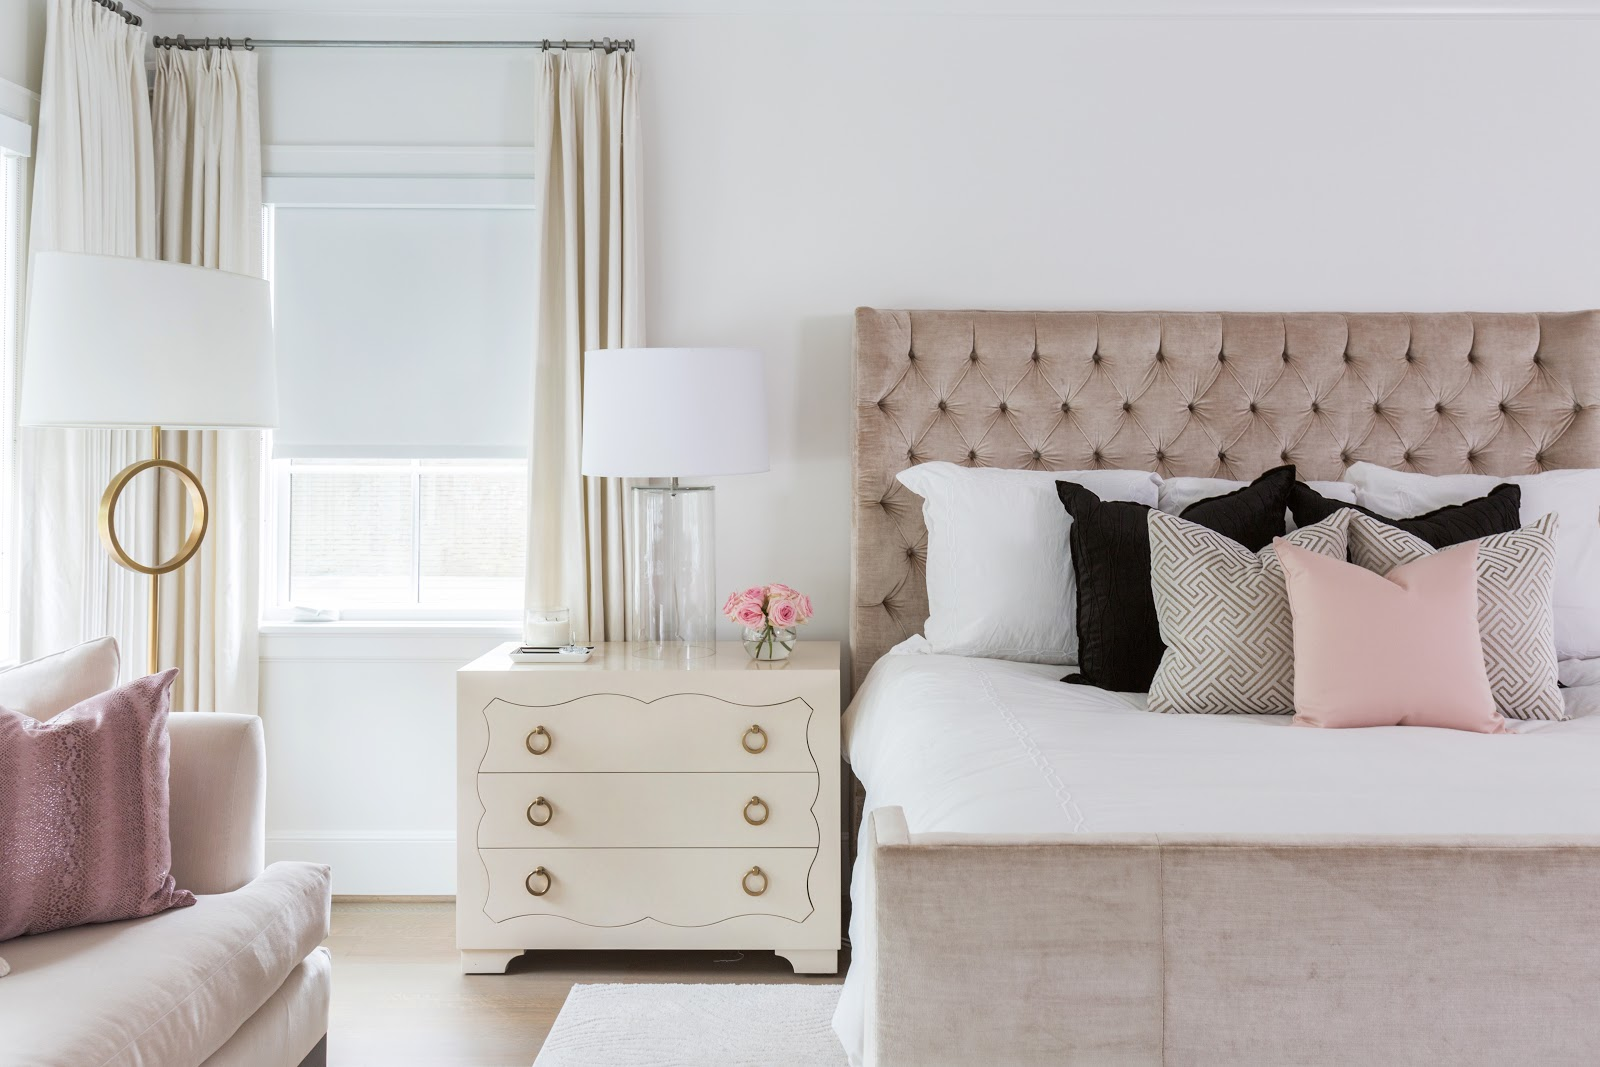 Blush velvet tufted headboard with neutral bedding and side table - laura u interior design